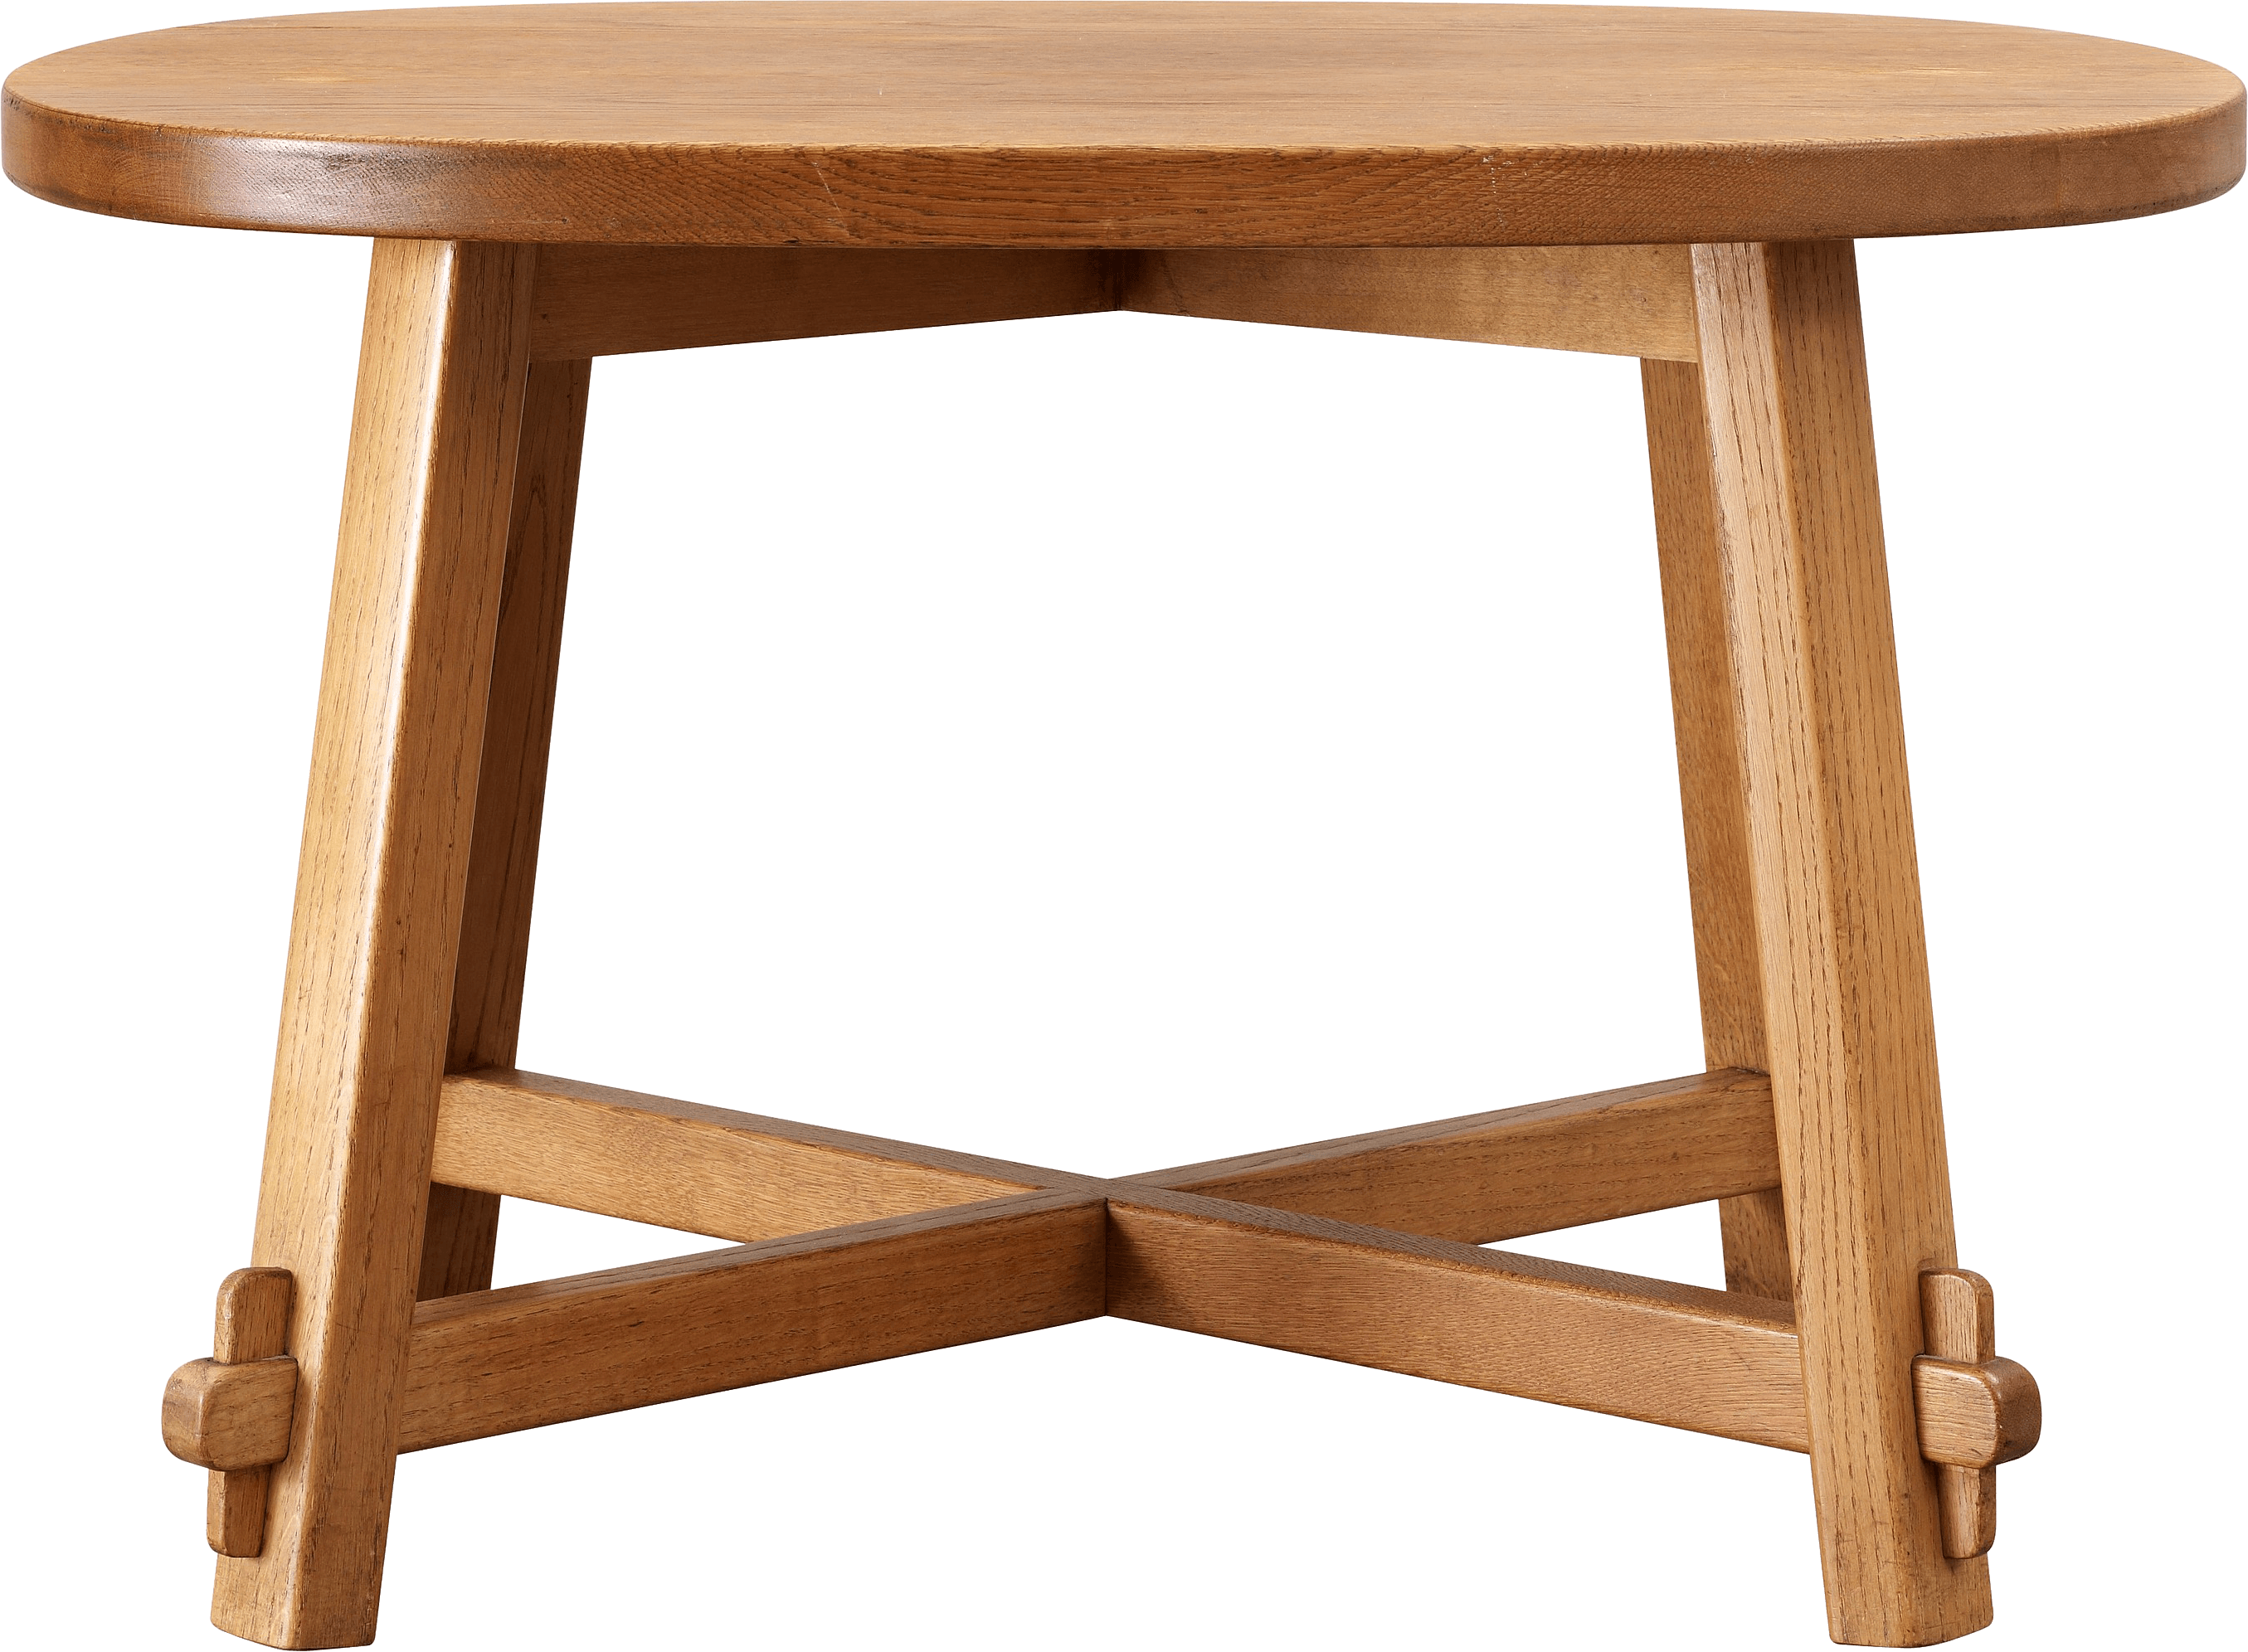 download png image wooden table png image